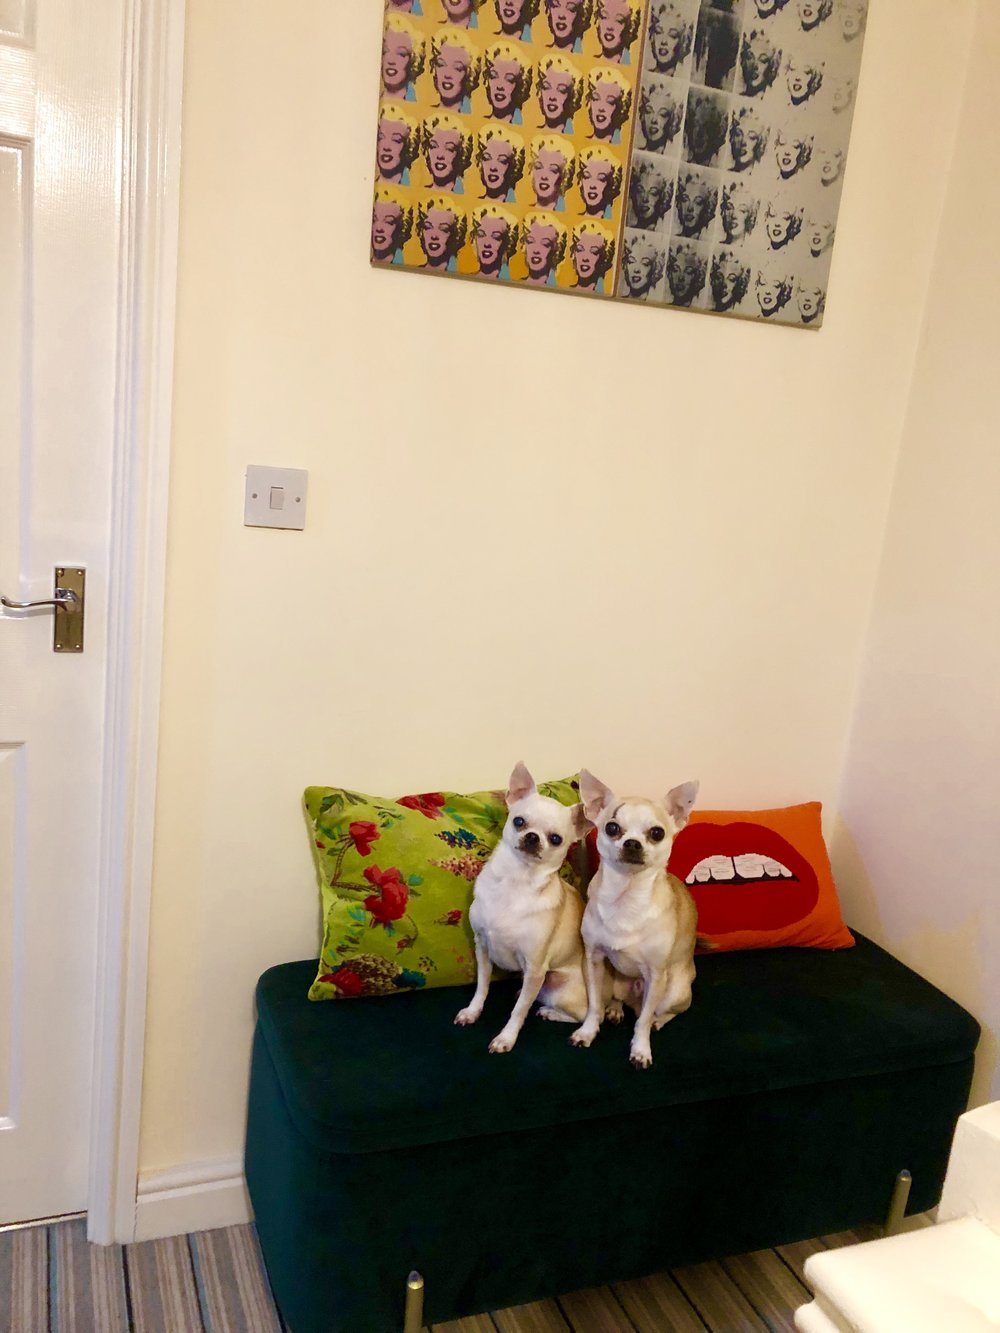 Ottoman - I'll give you 3 guesses……. made.com Cushions - Made.com Chihuahuas - free to good home (only bite now and again)